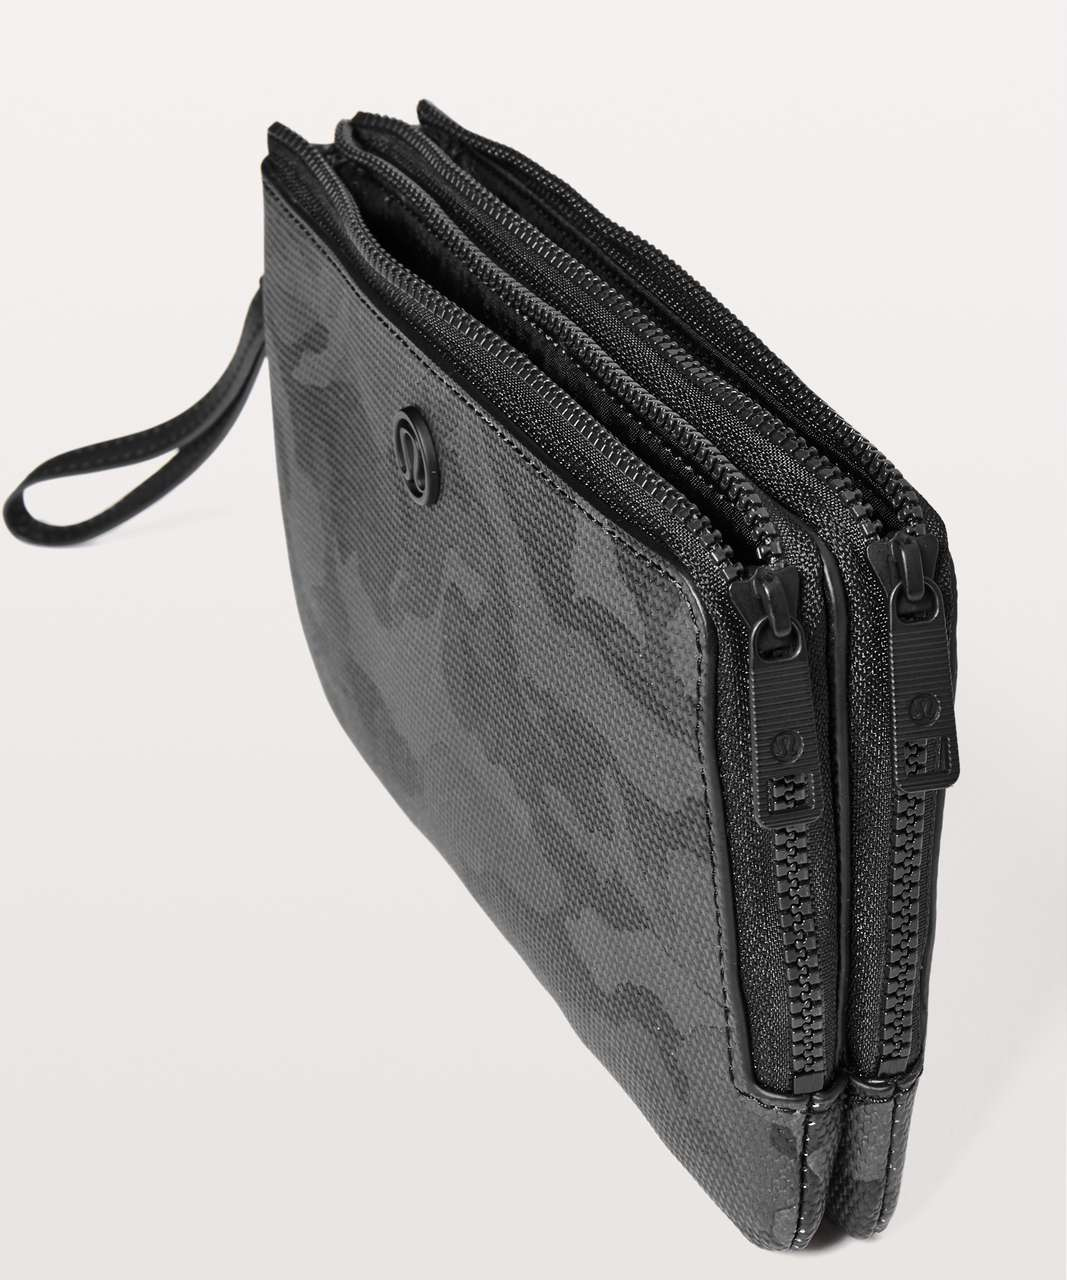 Lululemon Double Up Pouch - Incognito Camo Multi Grey / Black